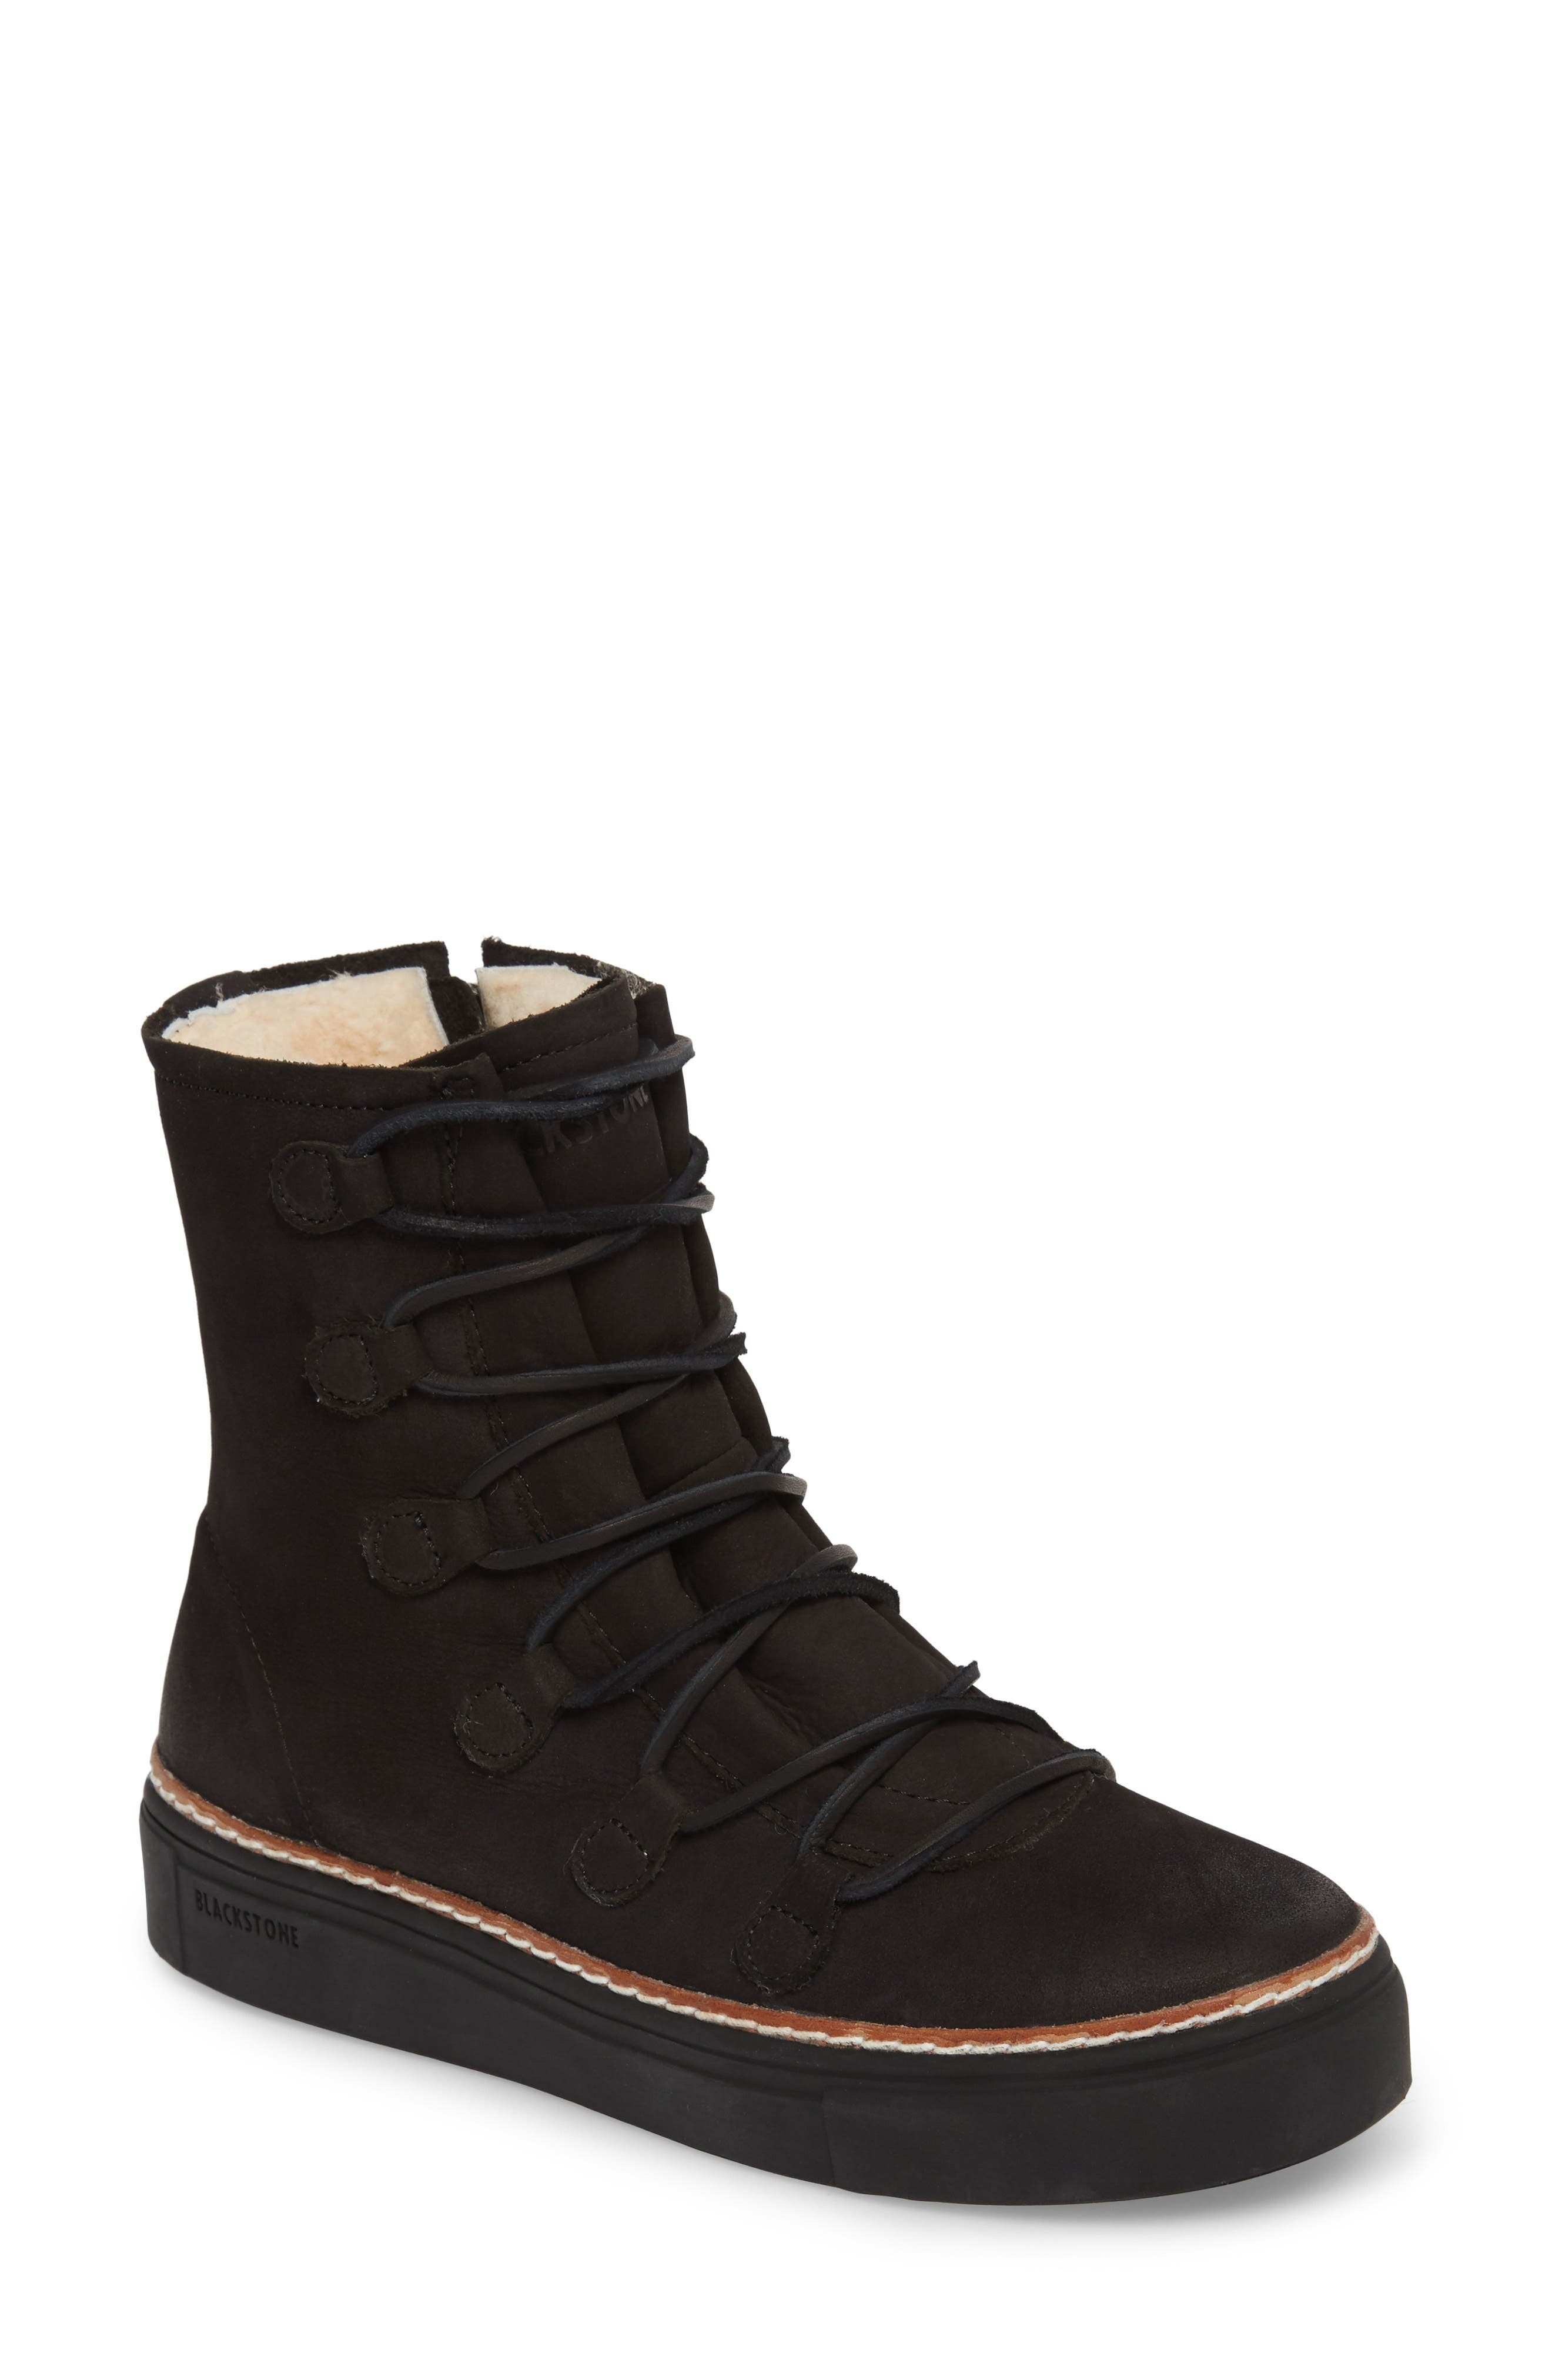 OL26 Genuine Shearling Lined Lace-Up Bootie,                         Main,                         color, Black Nubuck Leather